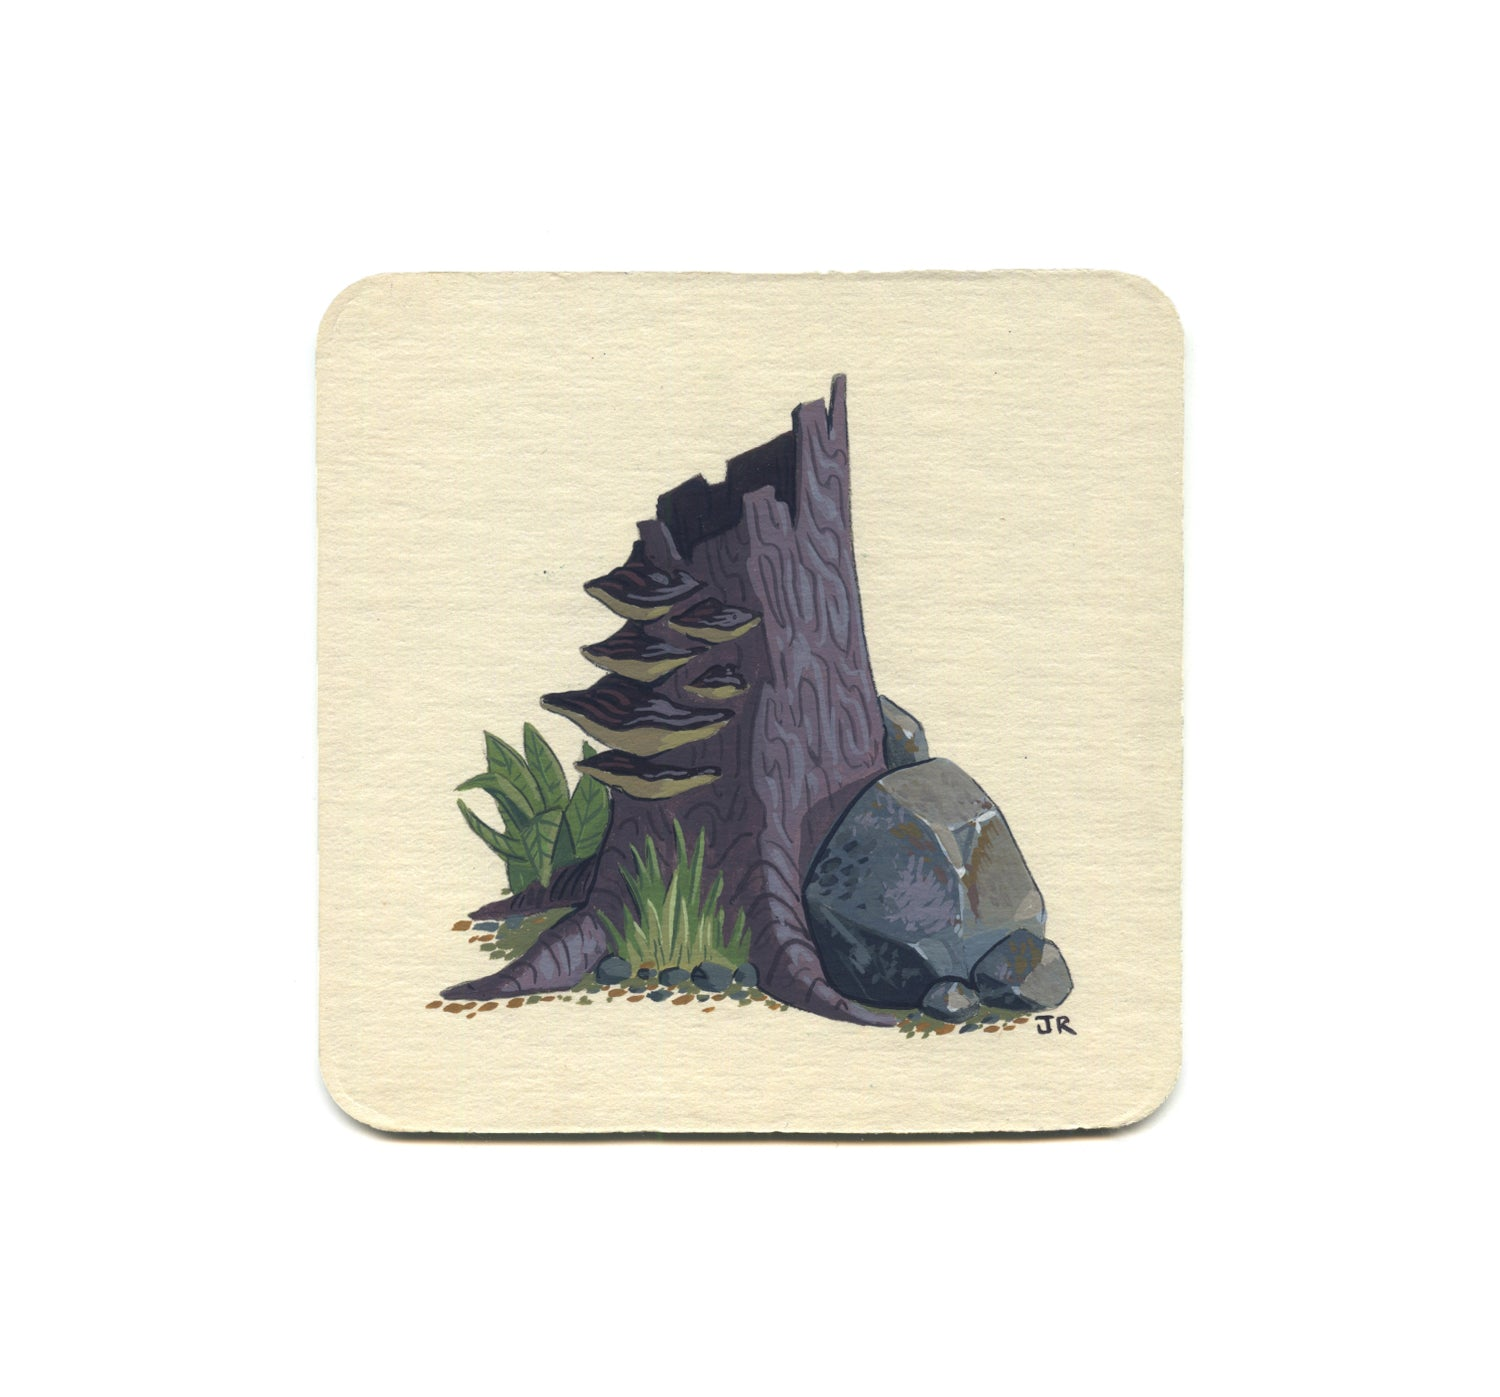 S1 Jesse Riggle - Mushrooms 1 Coaster